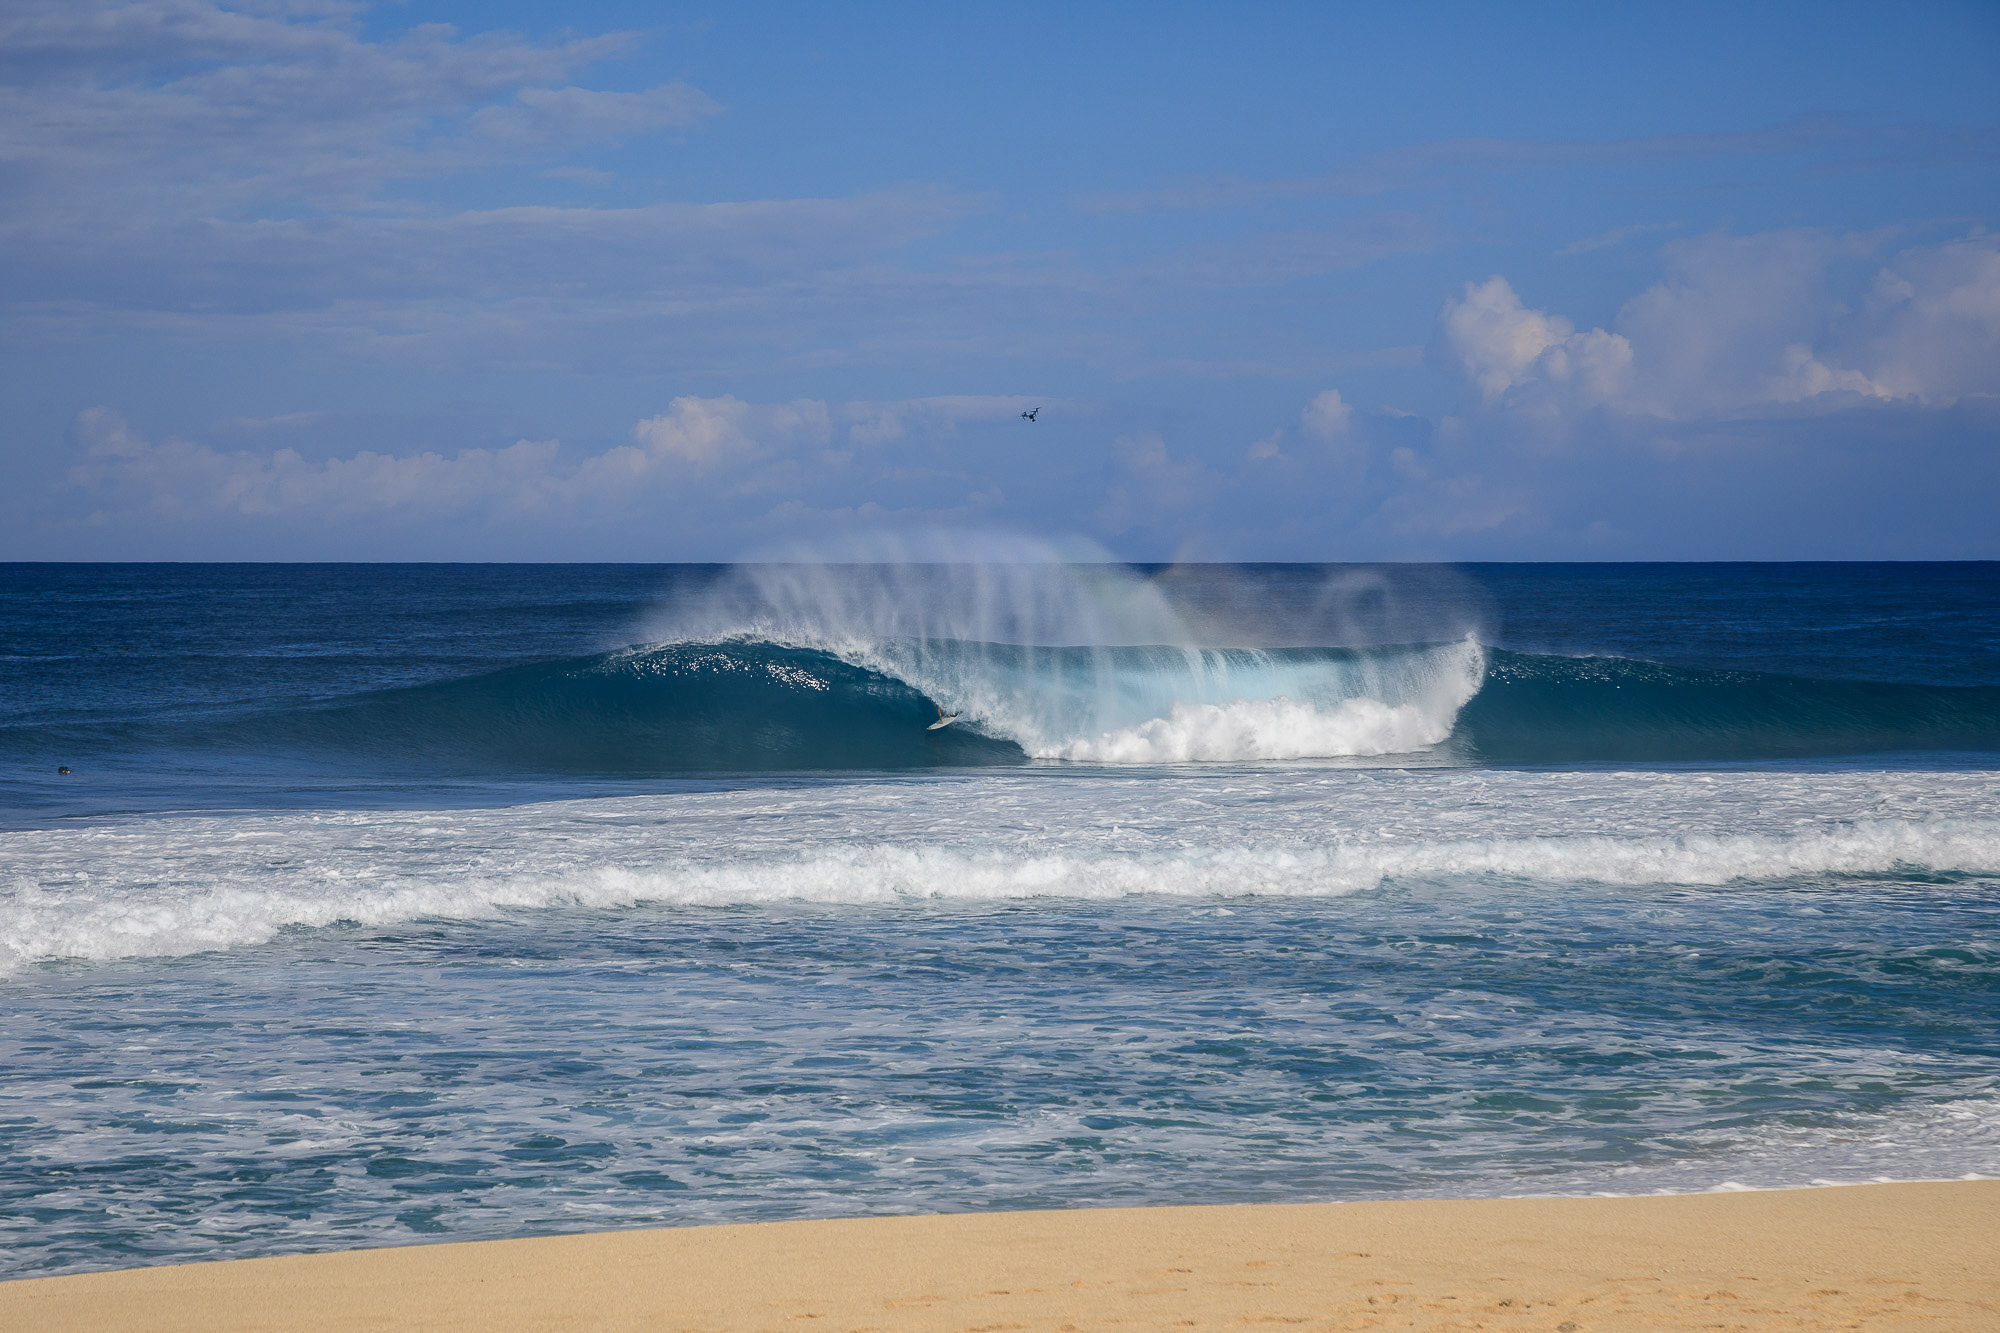 Mechanics of Pipeline -- How Surfing's Most Hollow, Hallow